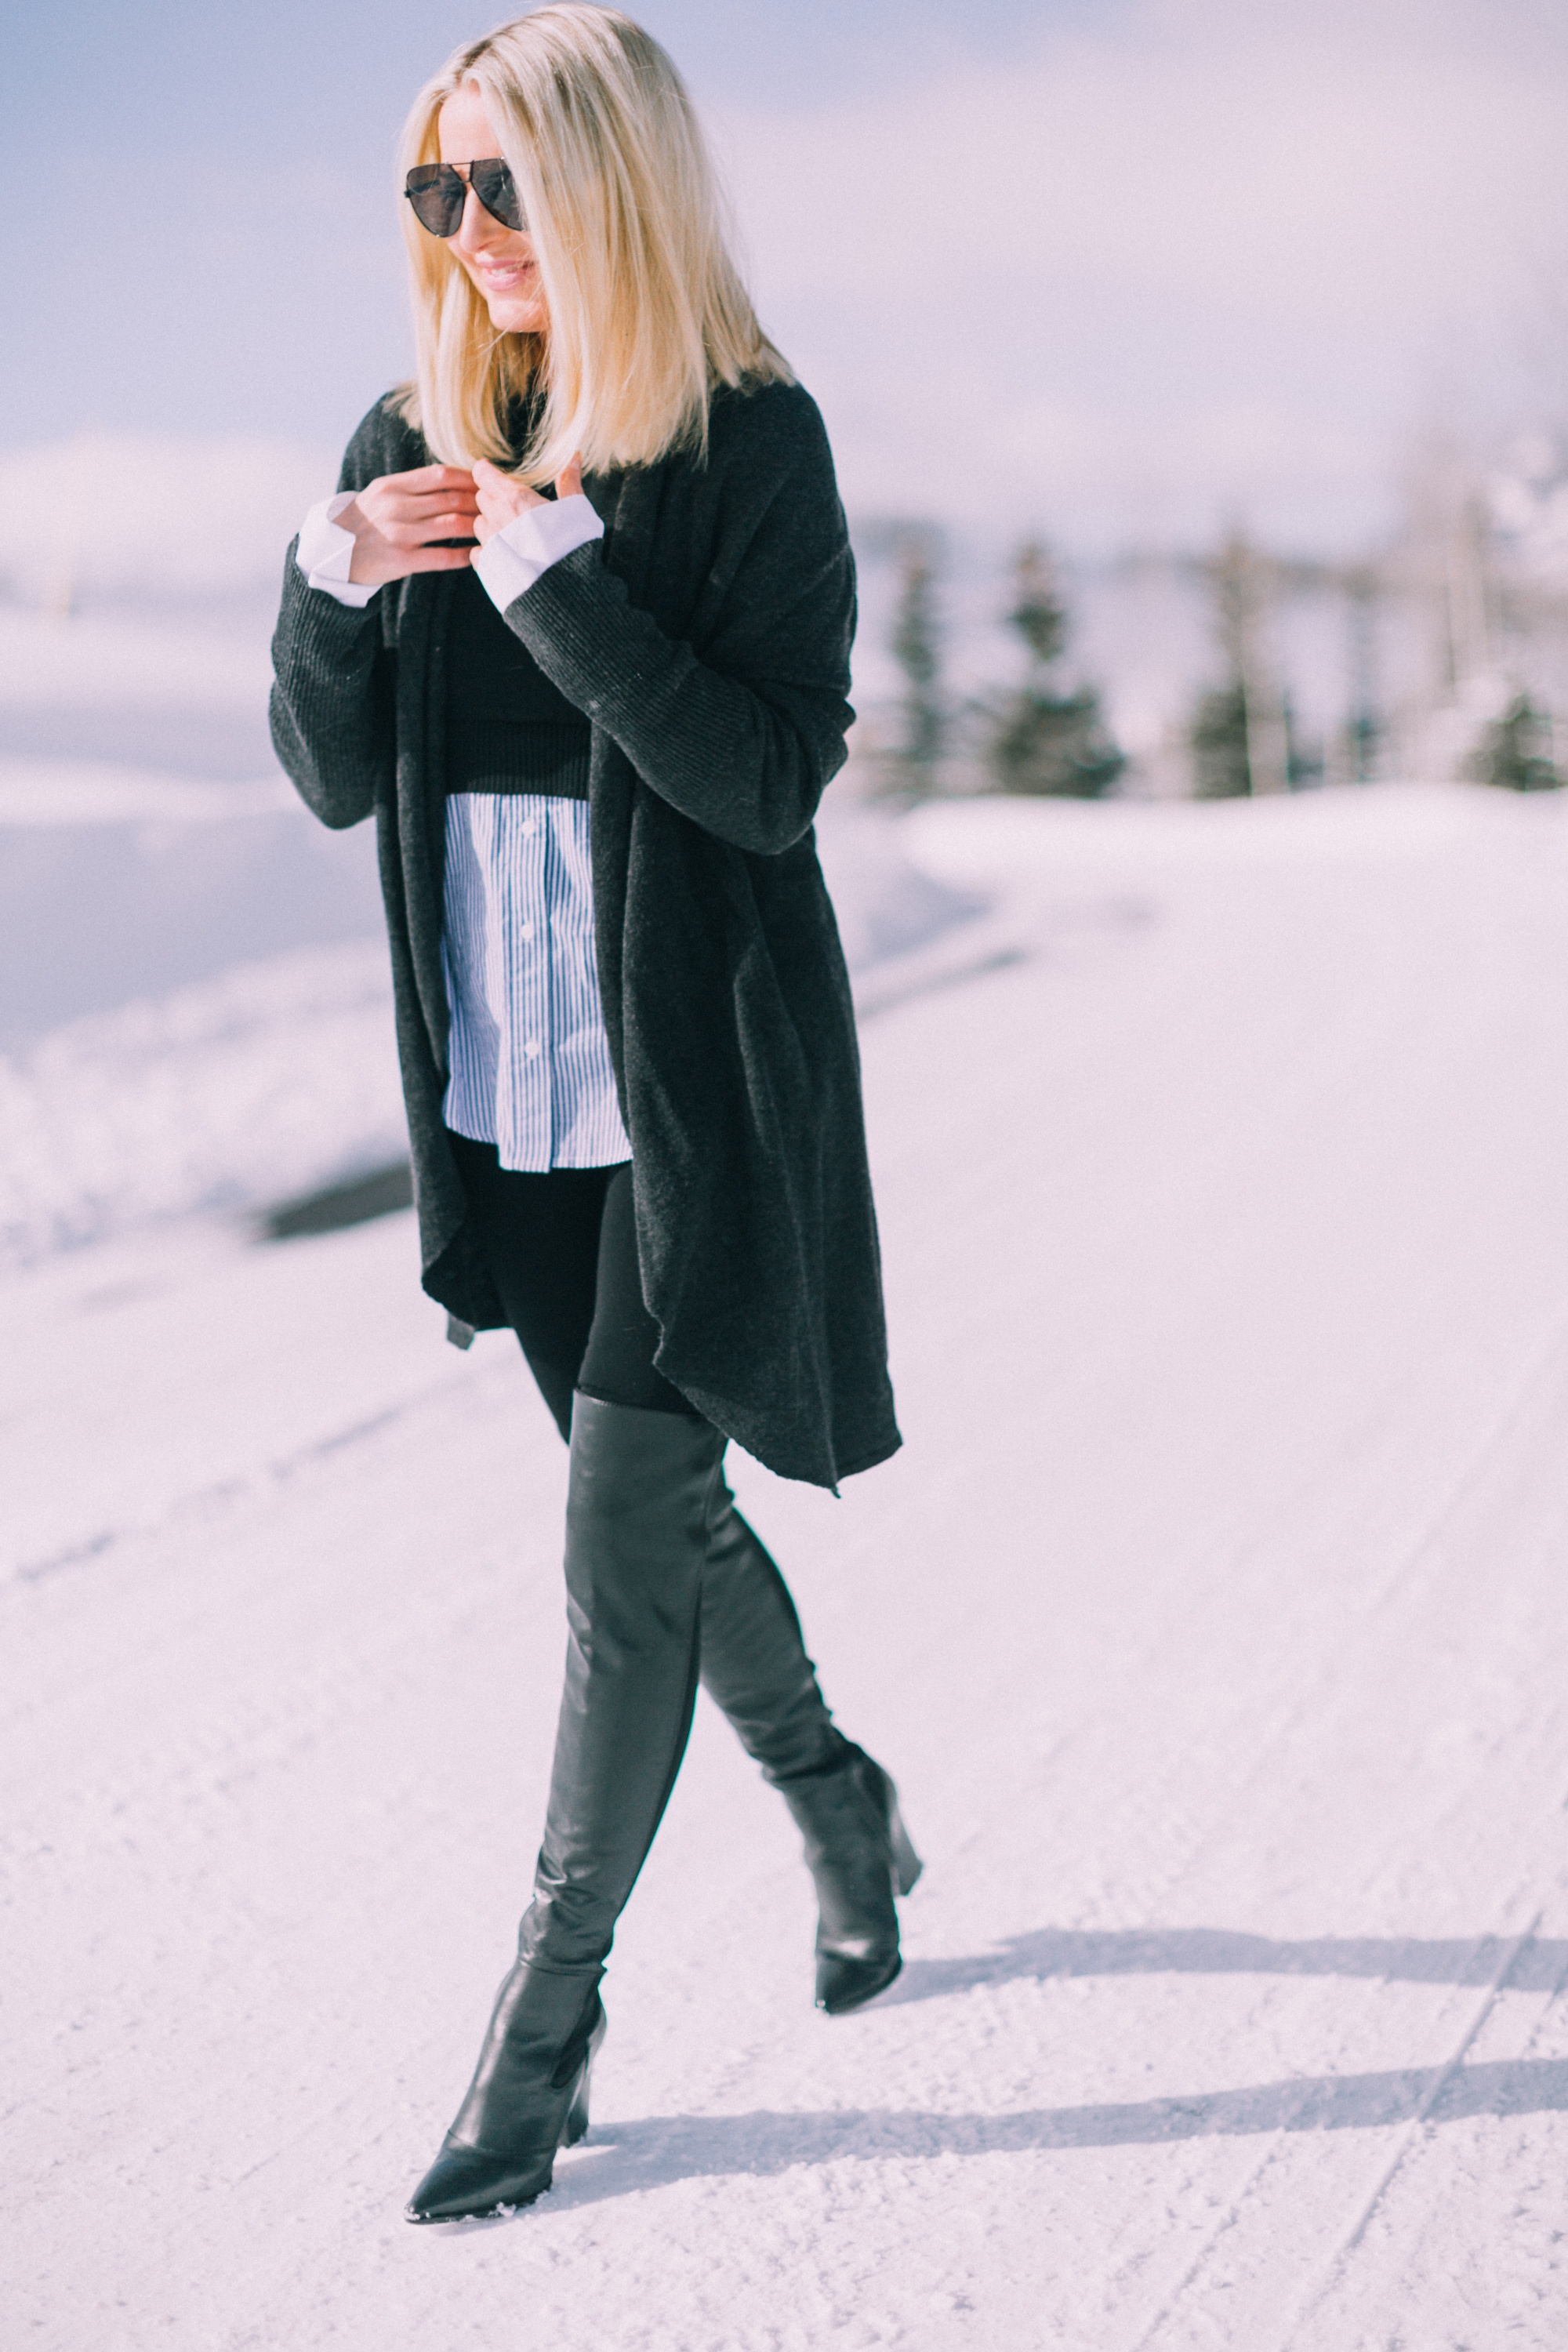 blond fashion blogger over 40 showing how to wear black Spanx leggings in an outfit with Sam Edelman Valda over the knee boots and Barefoot Dreams cardigan in the snow